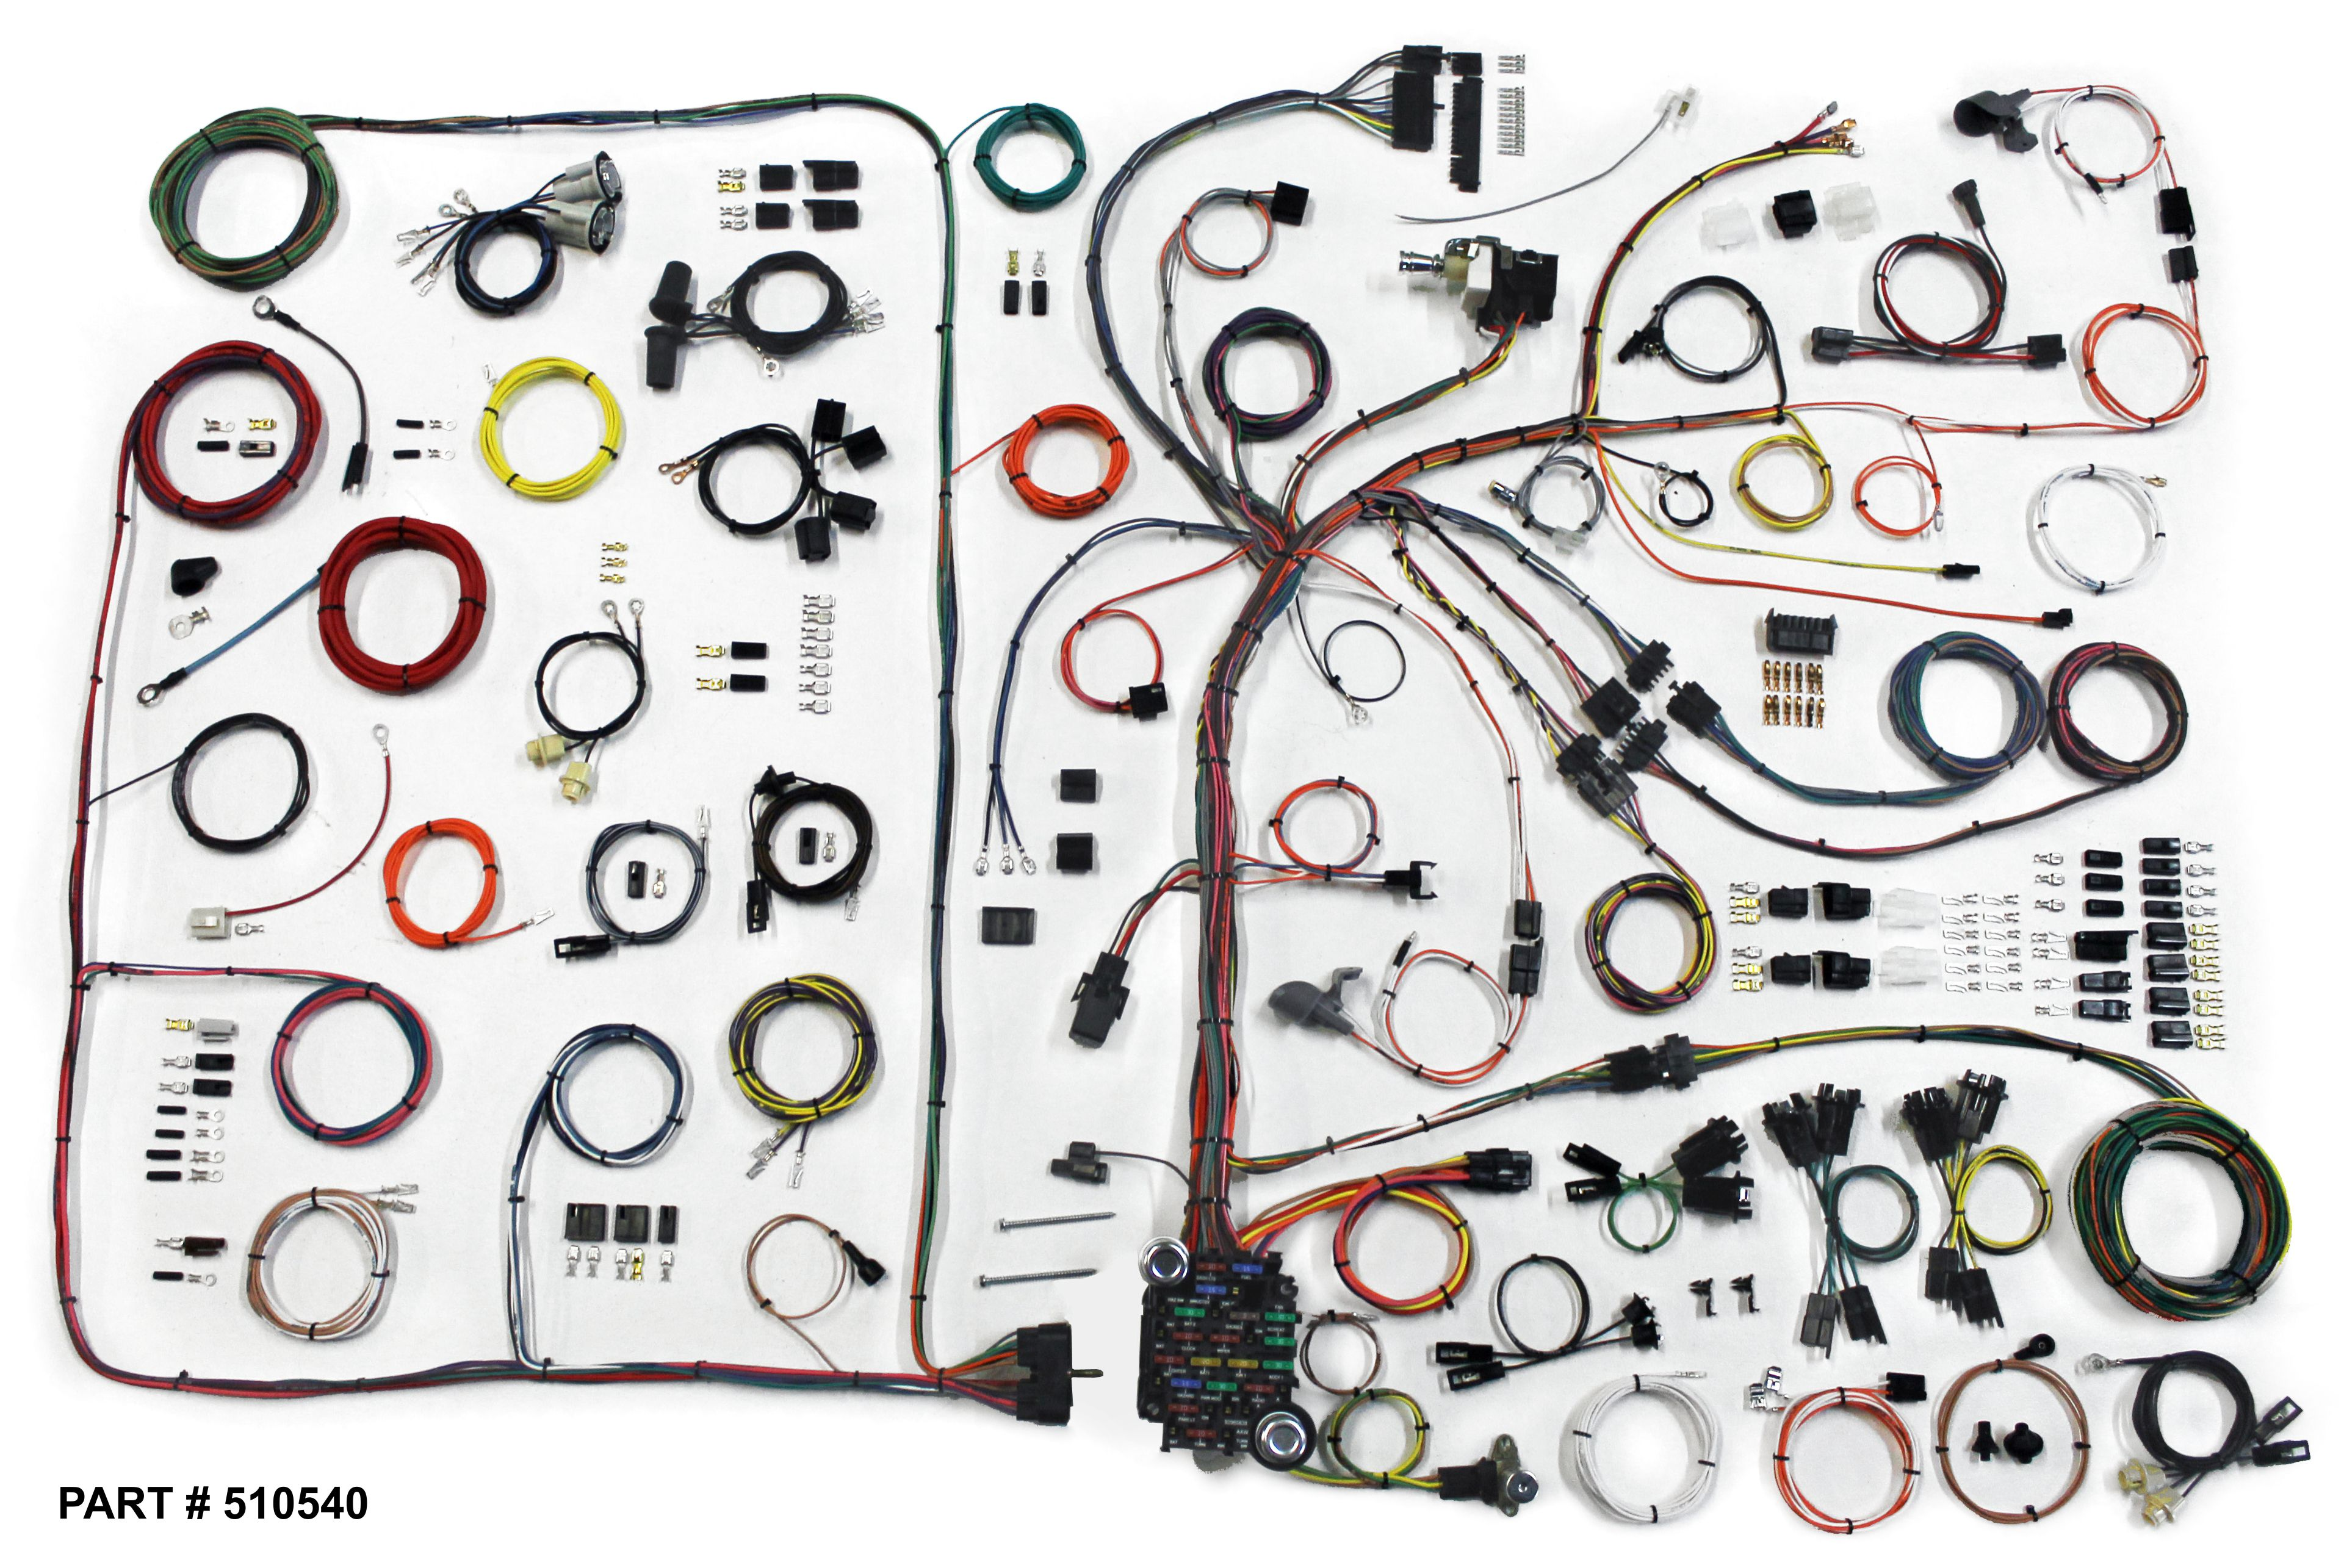 Wiring Harness For 1965 Pontiac Gto | Wiring Diagram on 65 ford ranchero wiring diagram, 65 dodge coronet wiring diagram, 65 ford falcon wiring diagram, 65 ford mustang wiring diagram, 65 chevy impala ss wiring diagram, 65 amc marlin wiring diagram, 65 ford thunderbird wiring diagram,